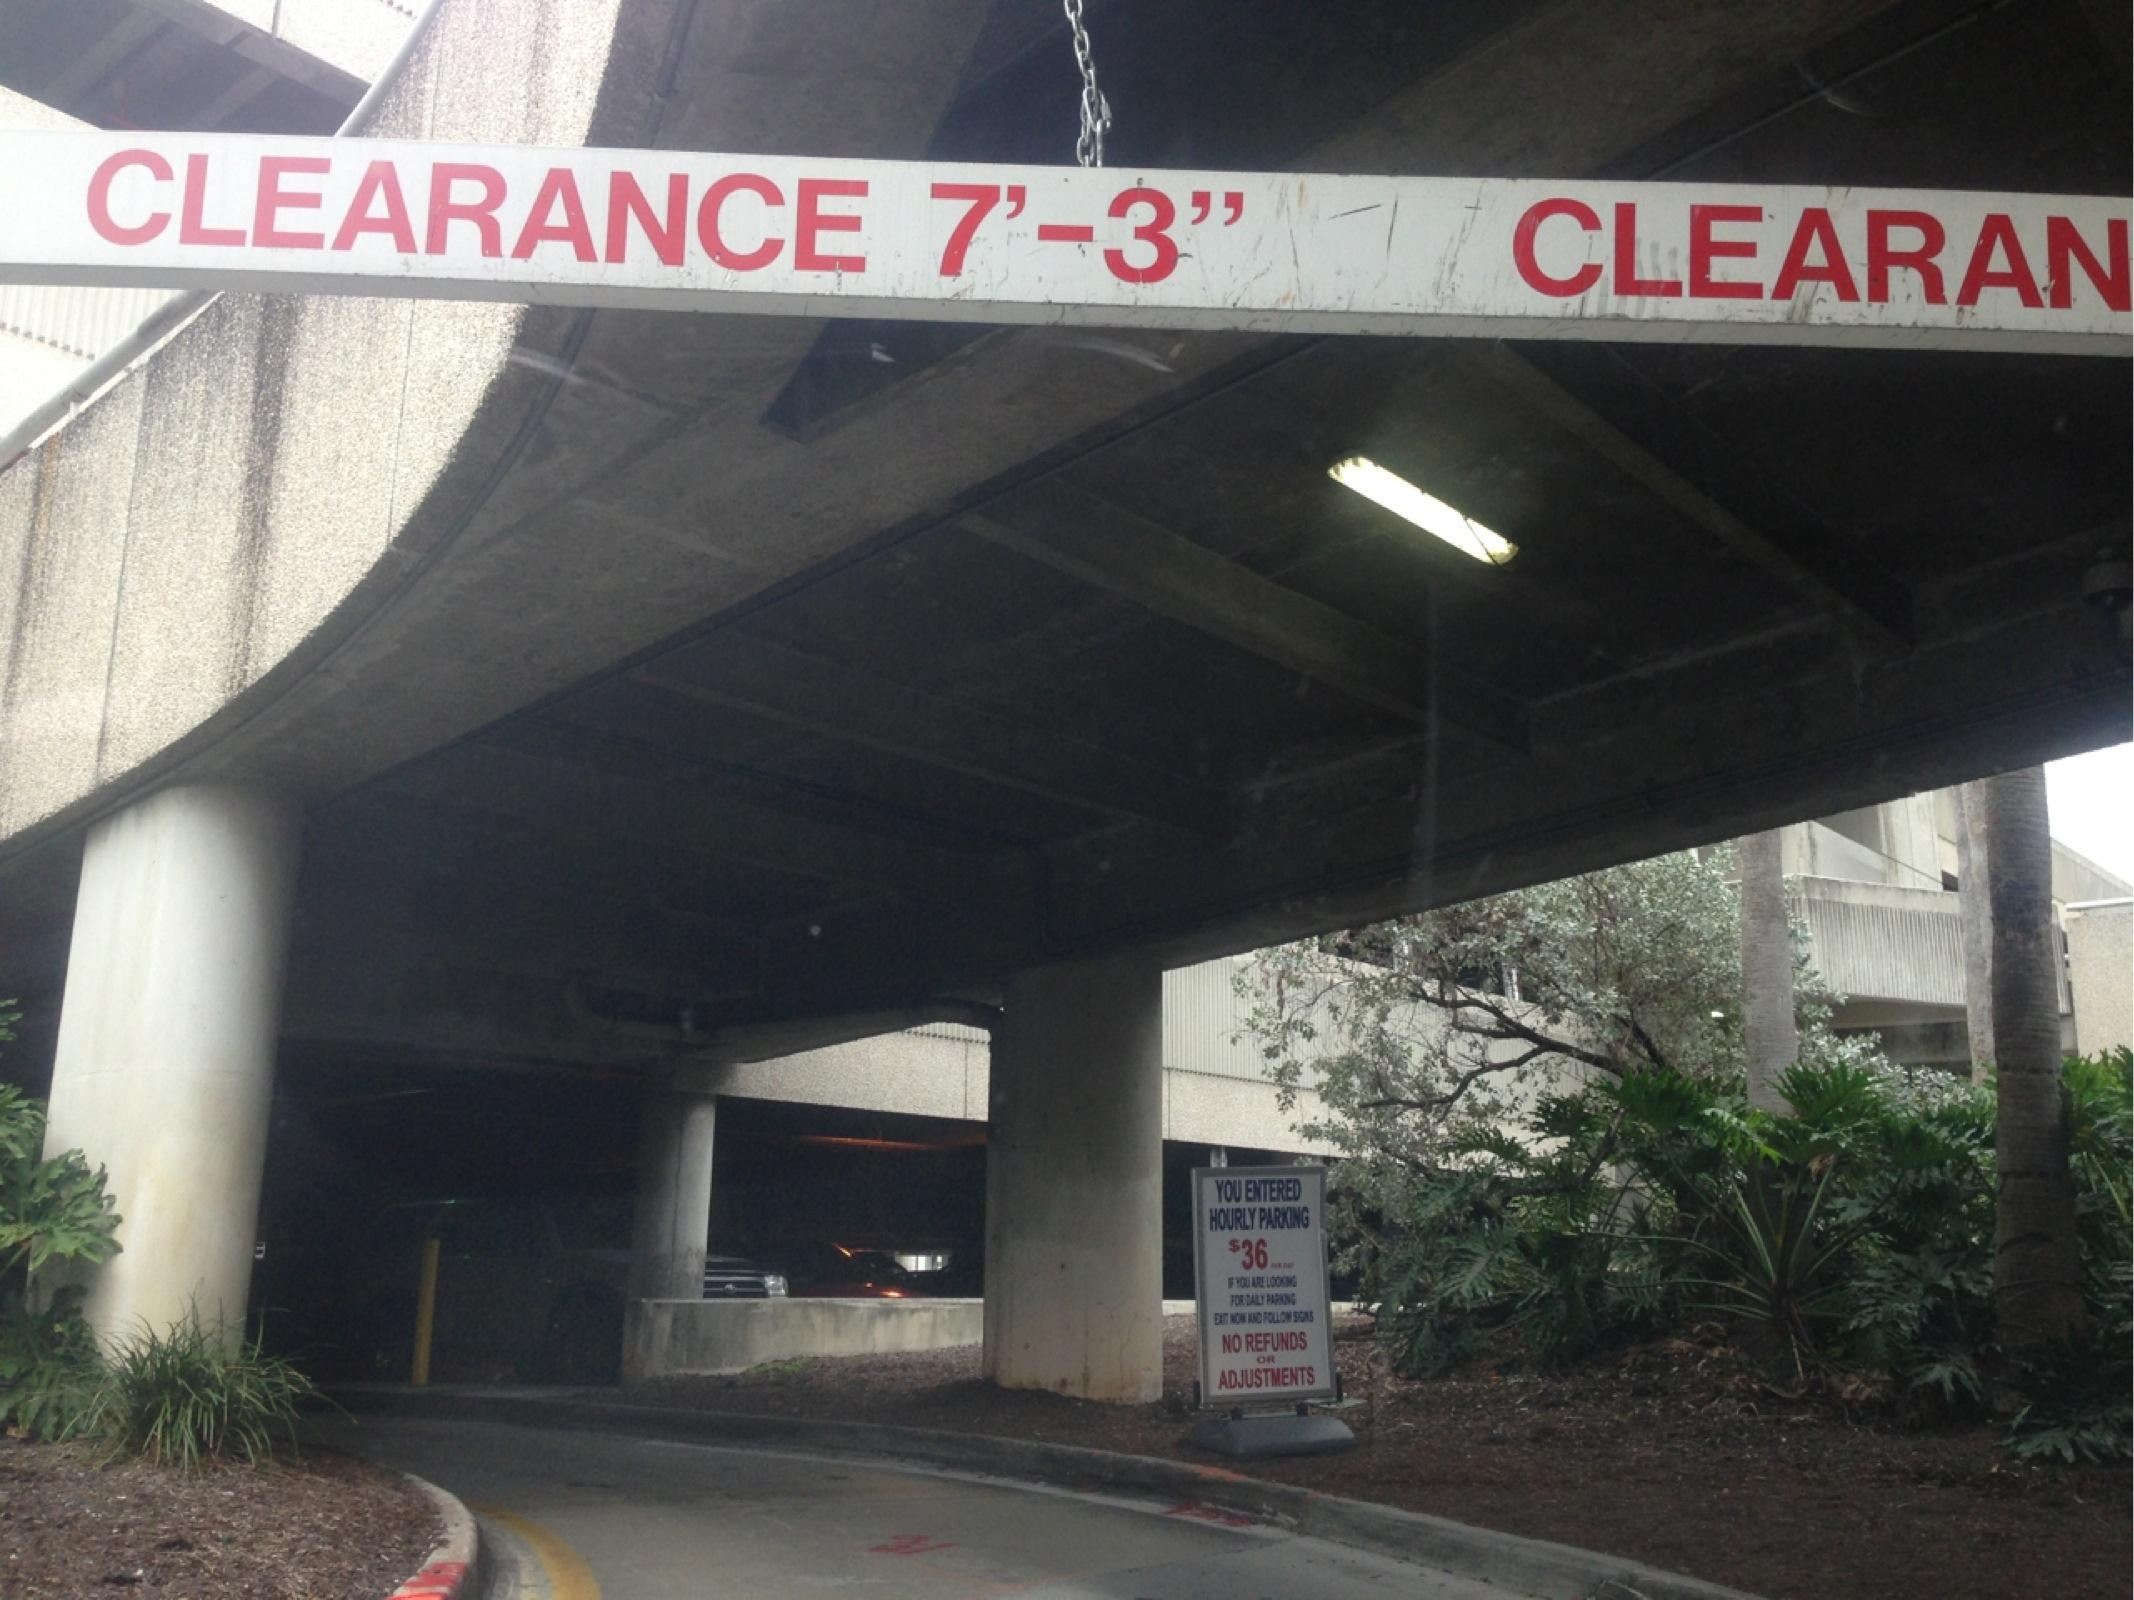 Fll Palm Garage Hourly Parking In Fort Lauderdale Parkme